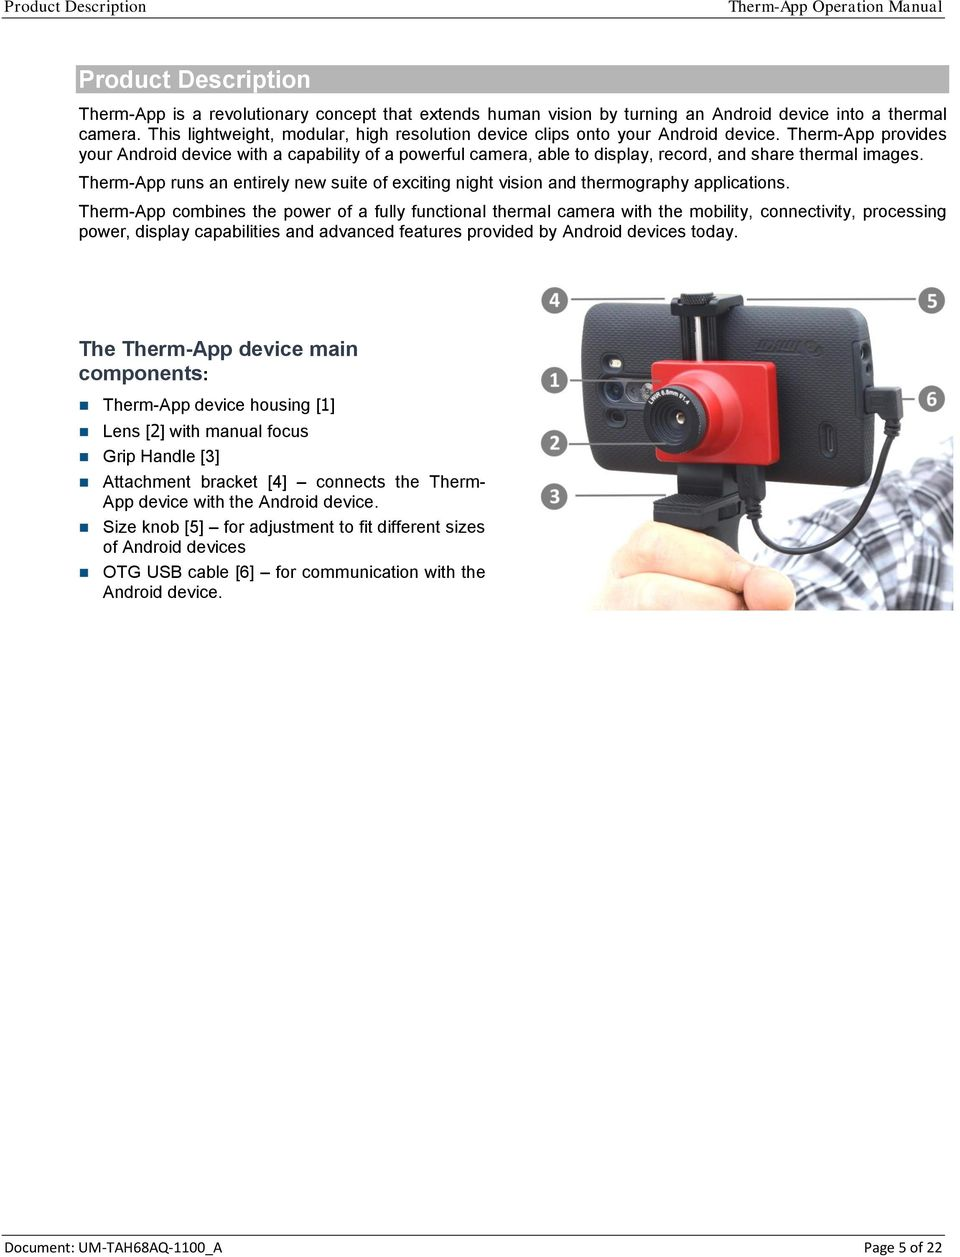 Therm-App TH for Thermography - High Resolution Mobile